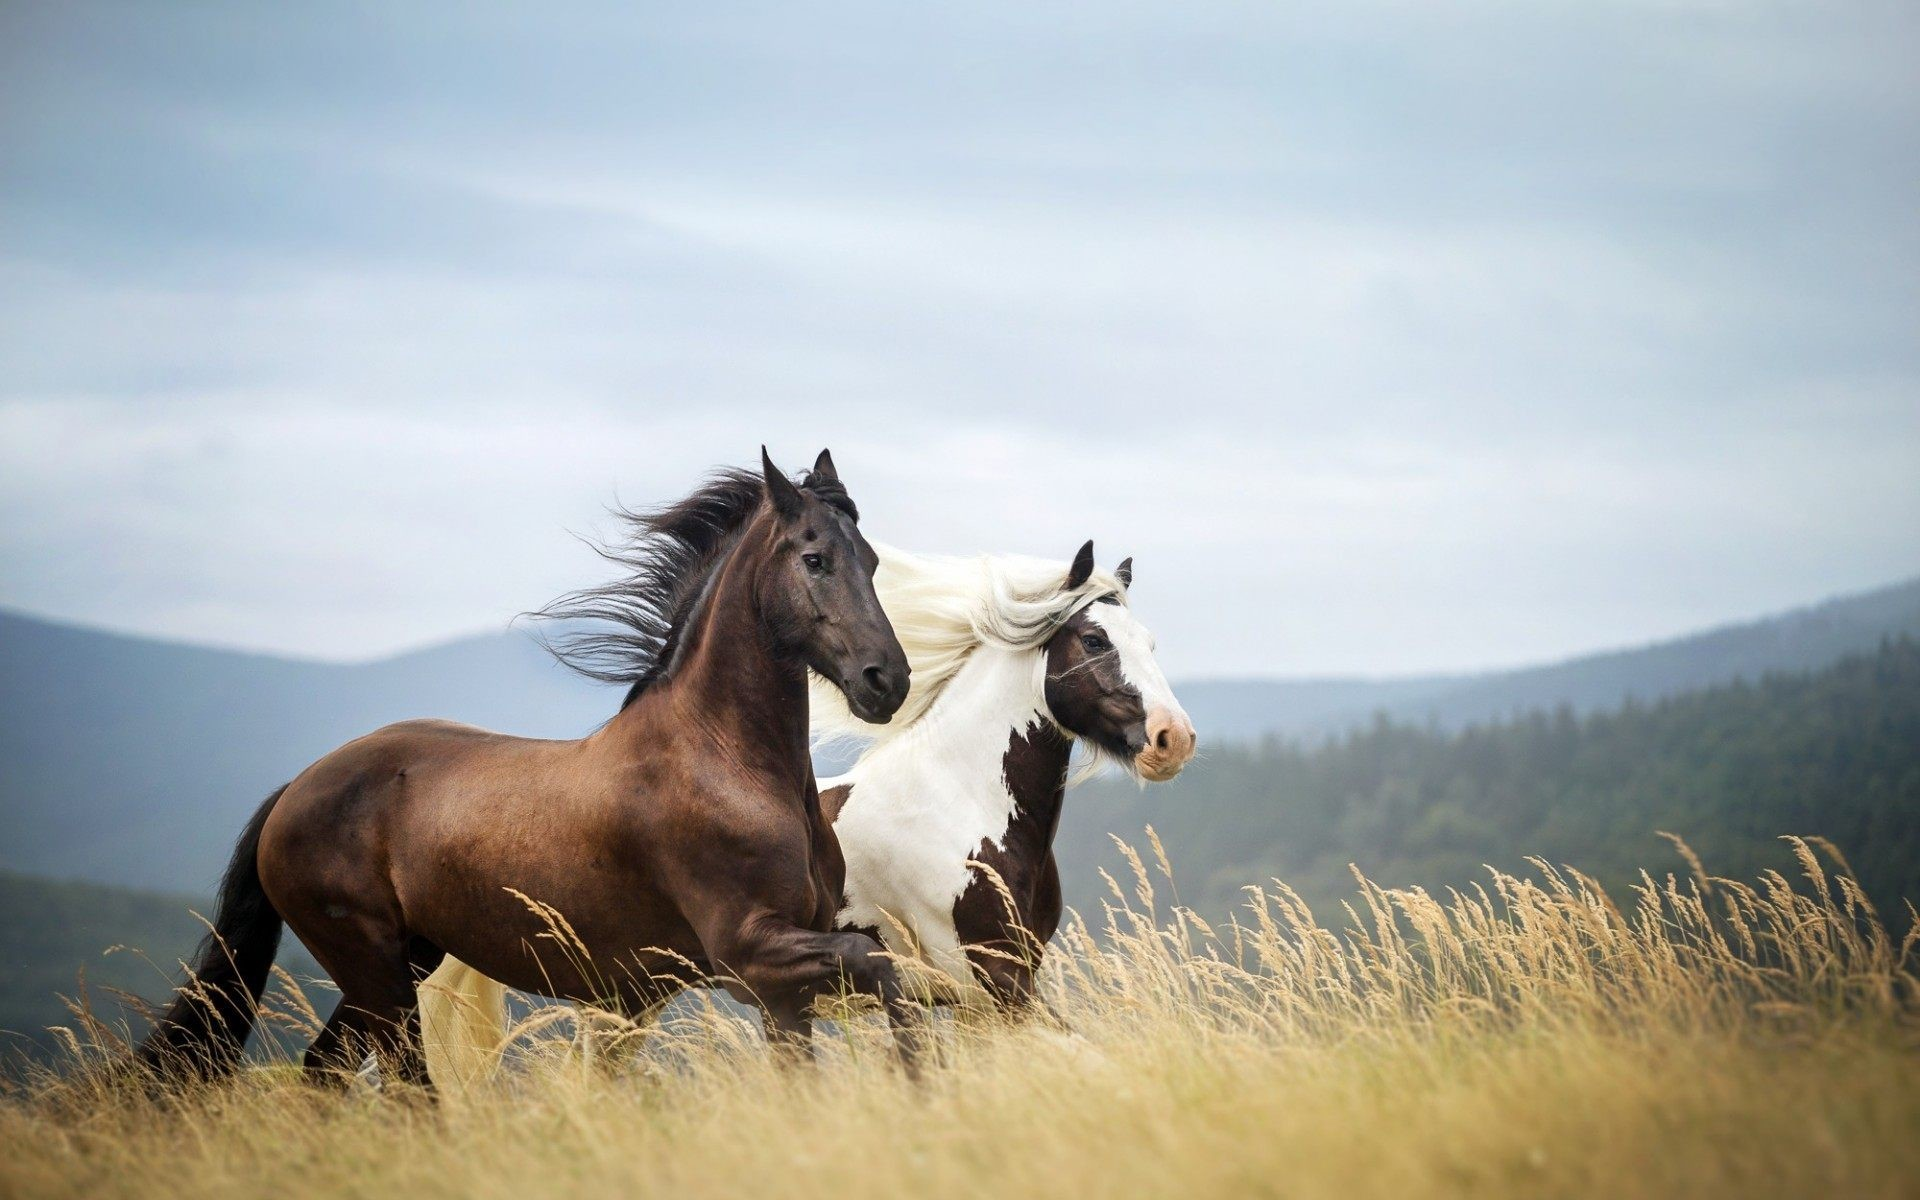 Wild Horses Wallpaper Horses In The Mountains 1920x1200 Download Hd Wallpaper Wallpapertip